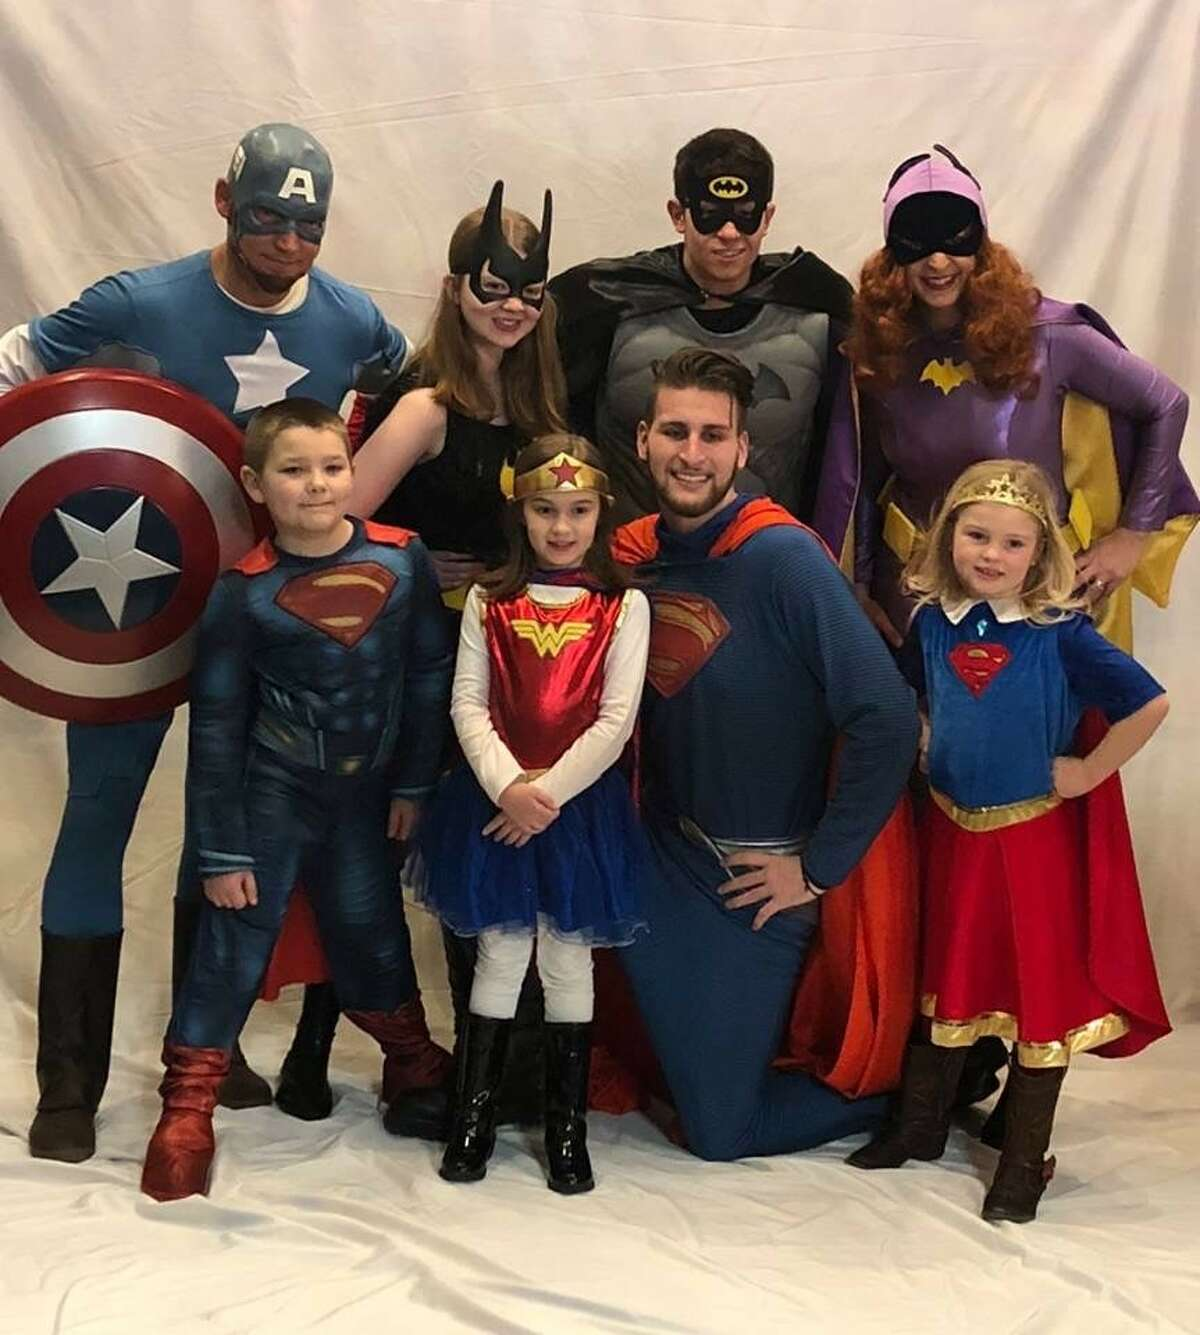 2. During a photoshoot, I dressed as Batwoman, and Ben Grant and Rylyn Swierzewski came dressed as Batman and Batgirl. None of us planned it. Ben and Ry were the 2012 Boy and Girl of the Year Honorees when I won the local LLS title of MWOY in 2012!